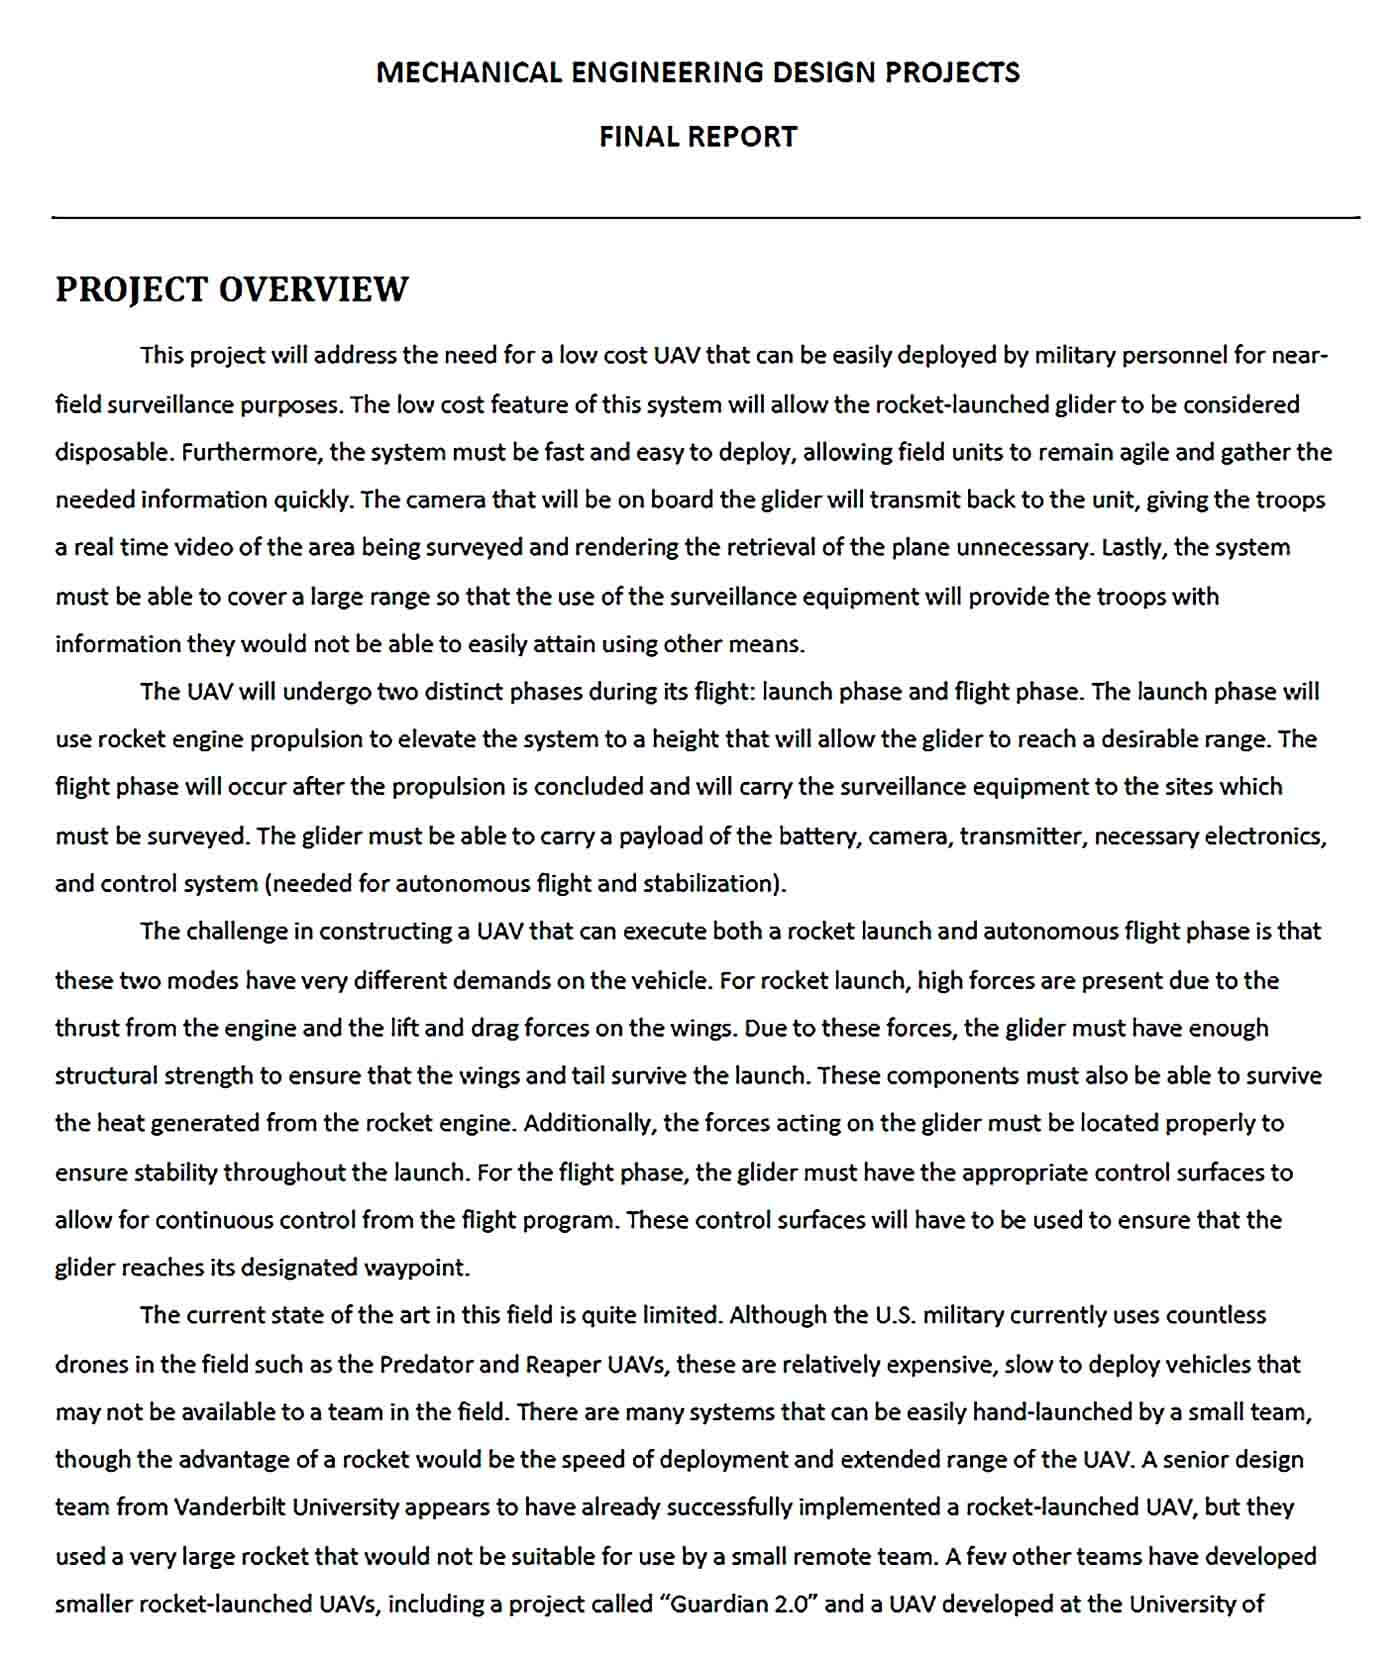 Sample Mechanical Engineering Project Report